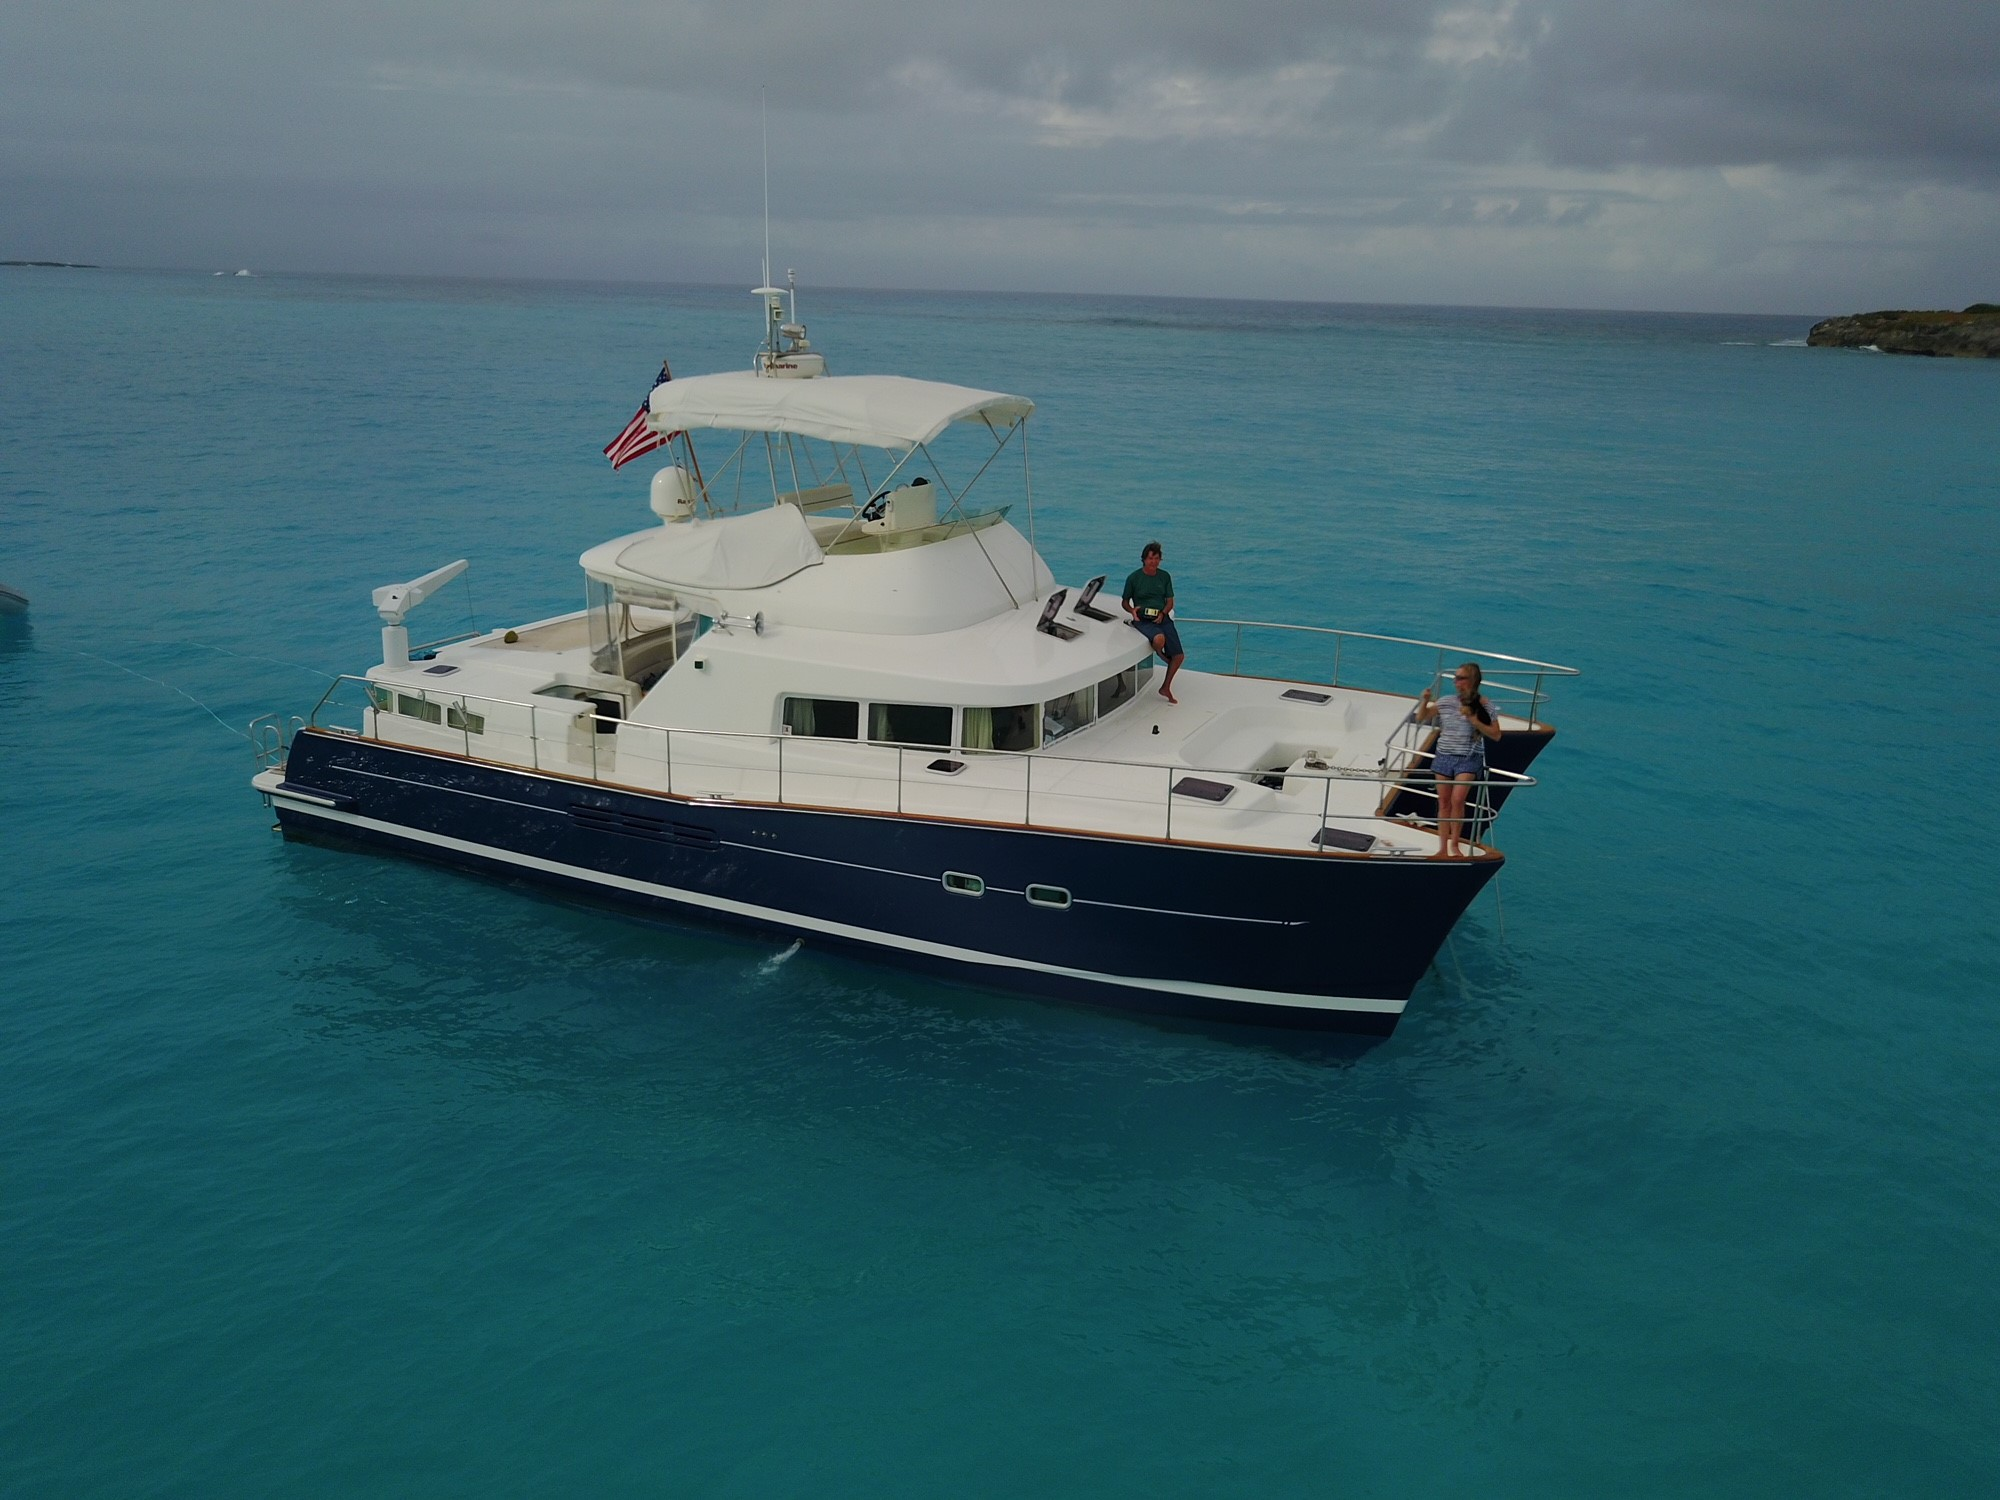 Catamarans BLUEMOON, Manufacturer: LAGOON, Model Year: 2003, Length: 43ft, Model: Lagoon 43 Power , Condition: Used, Listing Status: Catamaran for Sale, Price: USD 310000